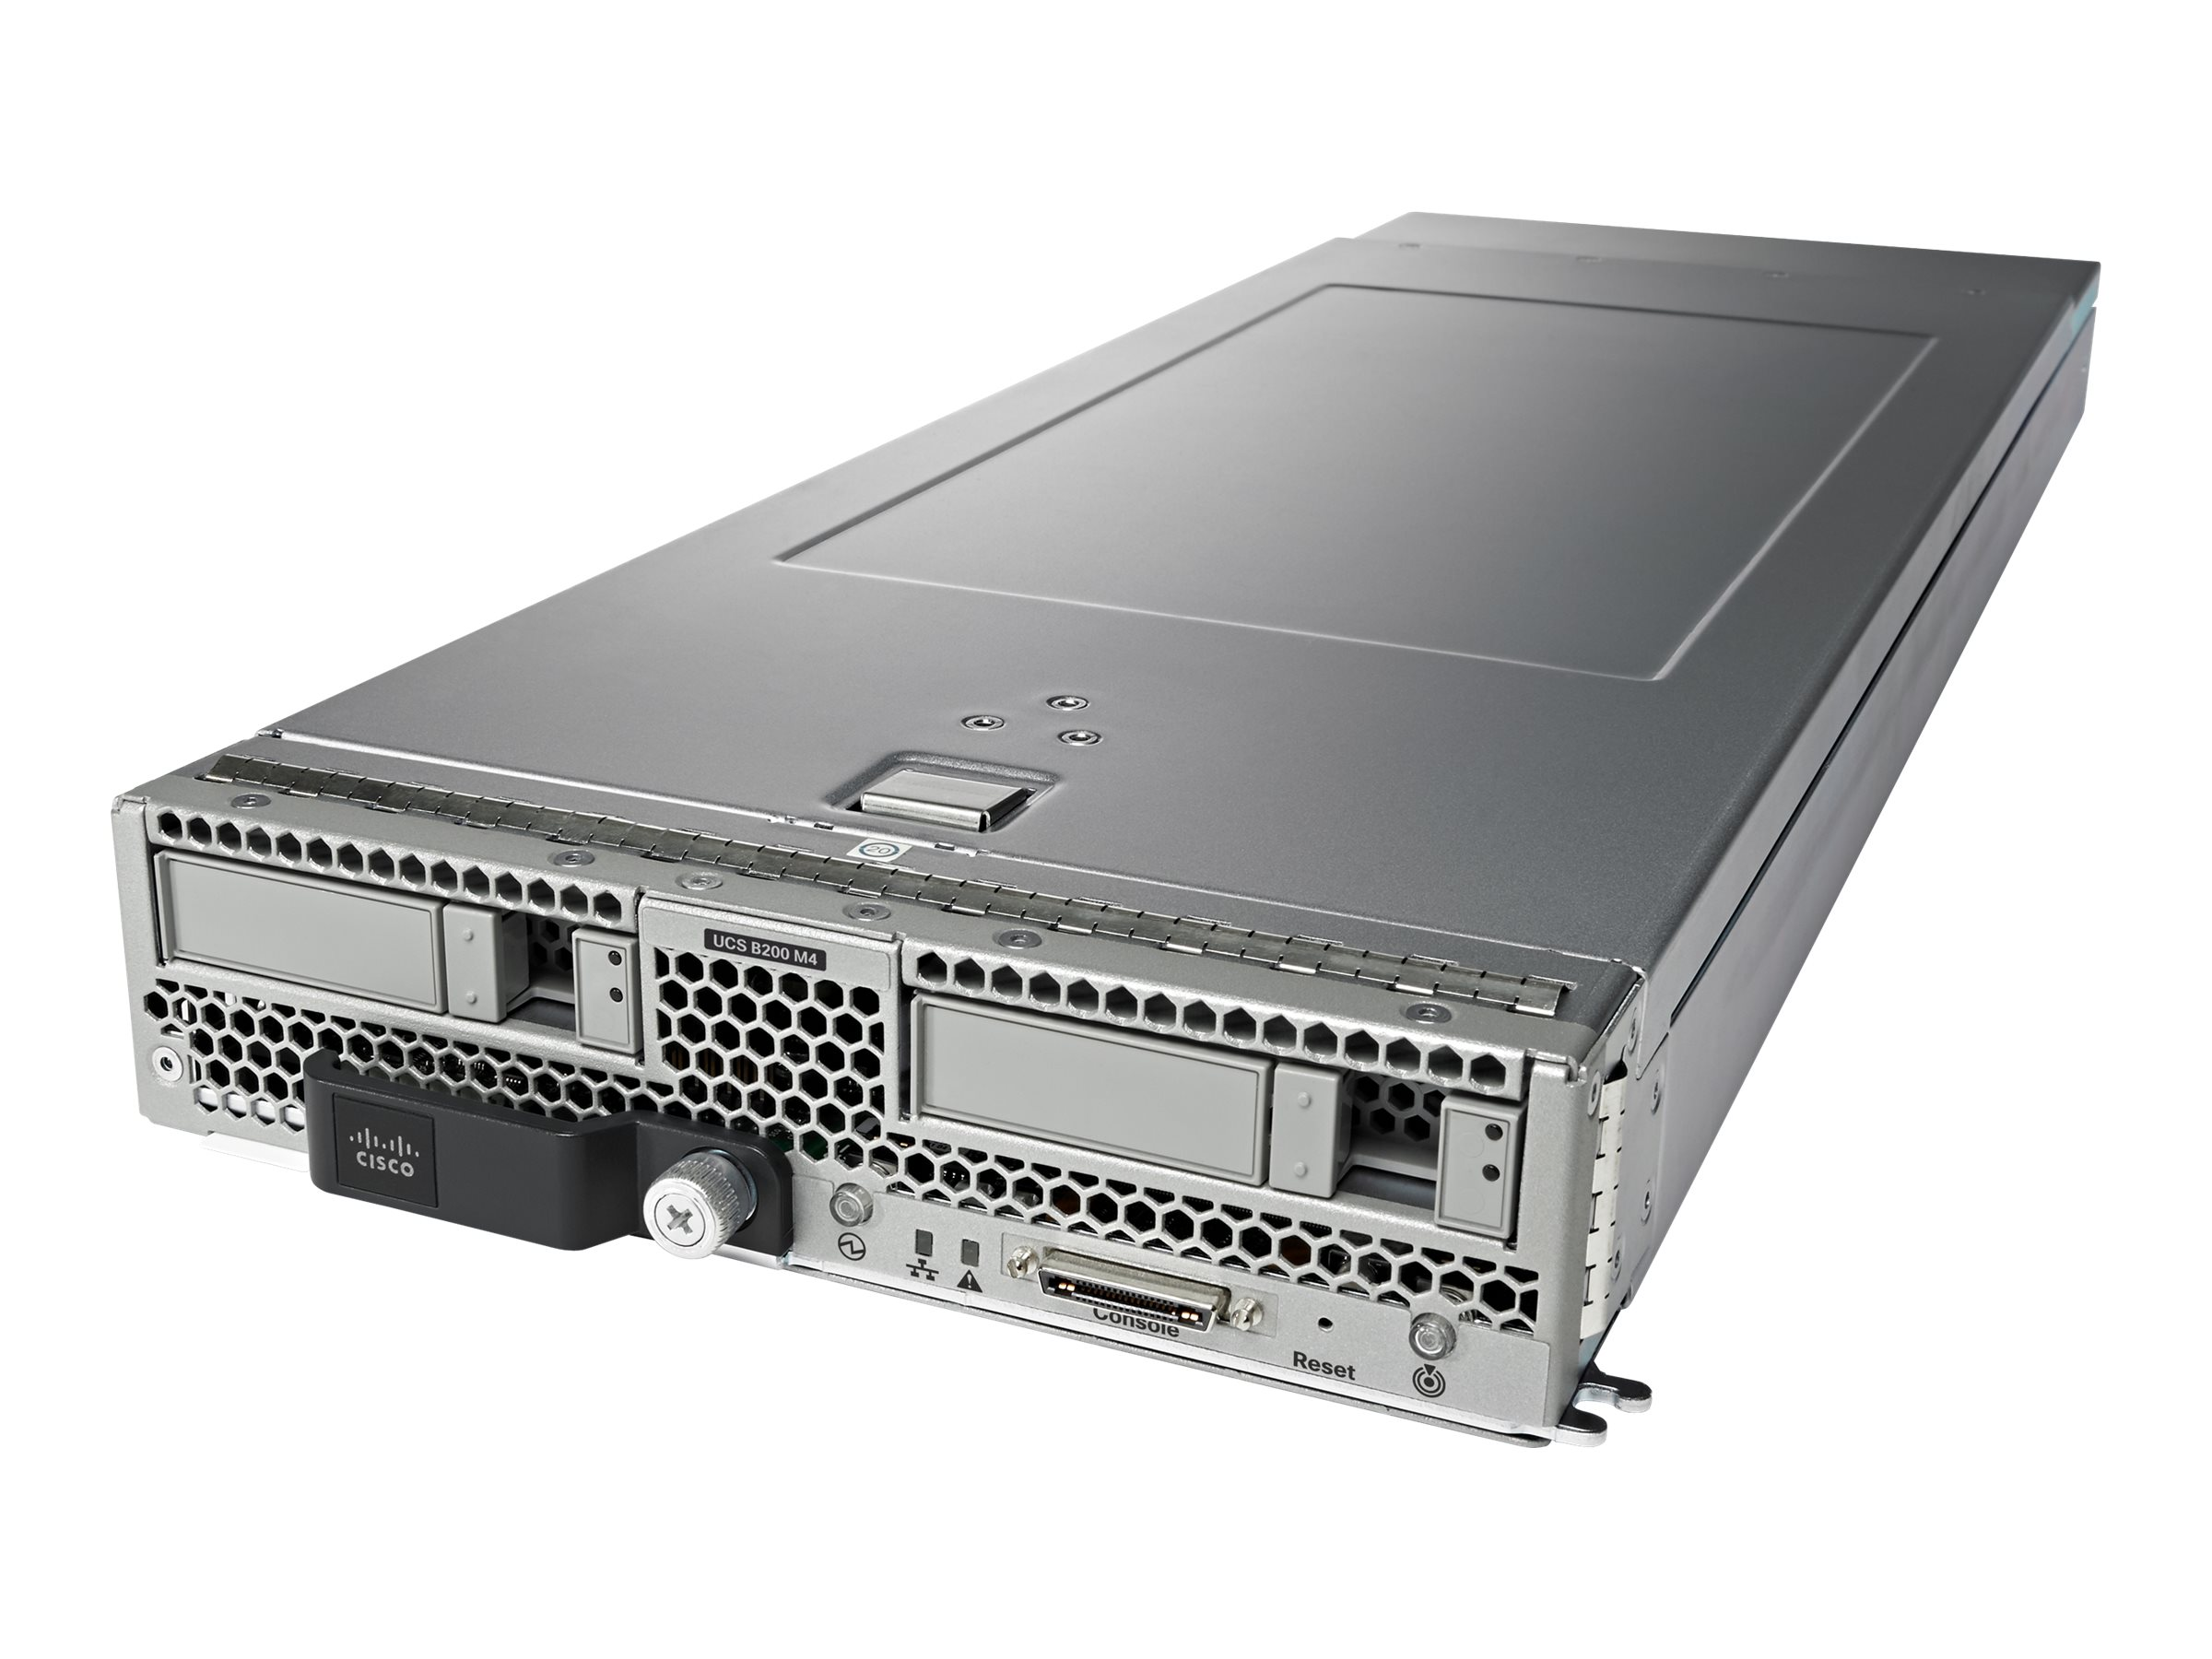 Cisco UCS Smart Play Select B200 M4 Blade Advanced 3 (2x)Xeon E5-2670 v3 256GB VIC1340, UCS-SPL-B200M4-A3